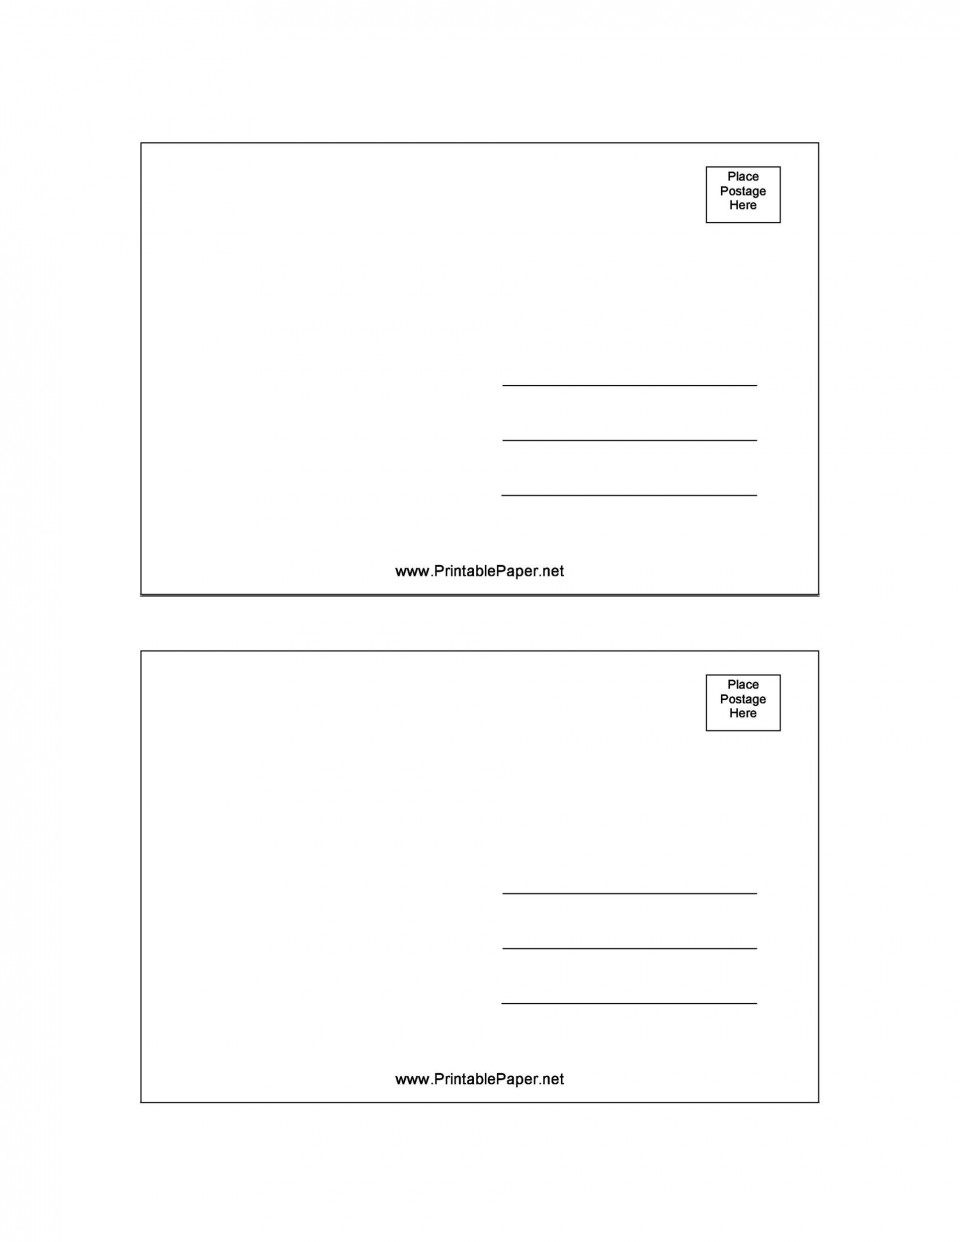 007 Fascinating Postcard Layout For Microsoft Word Picture  Busines Template960